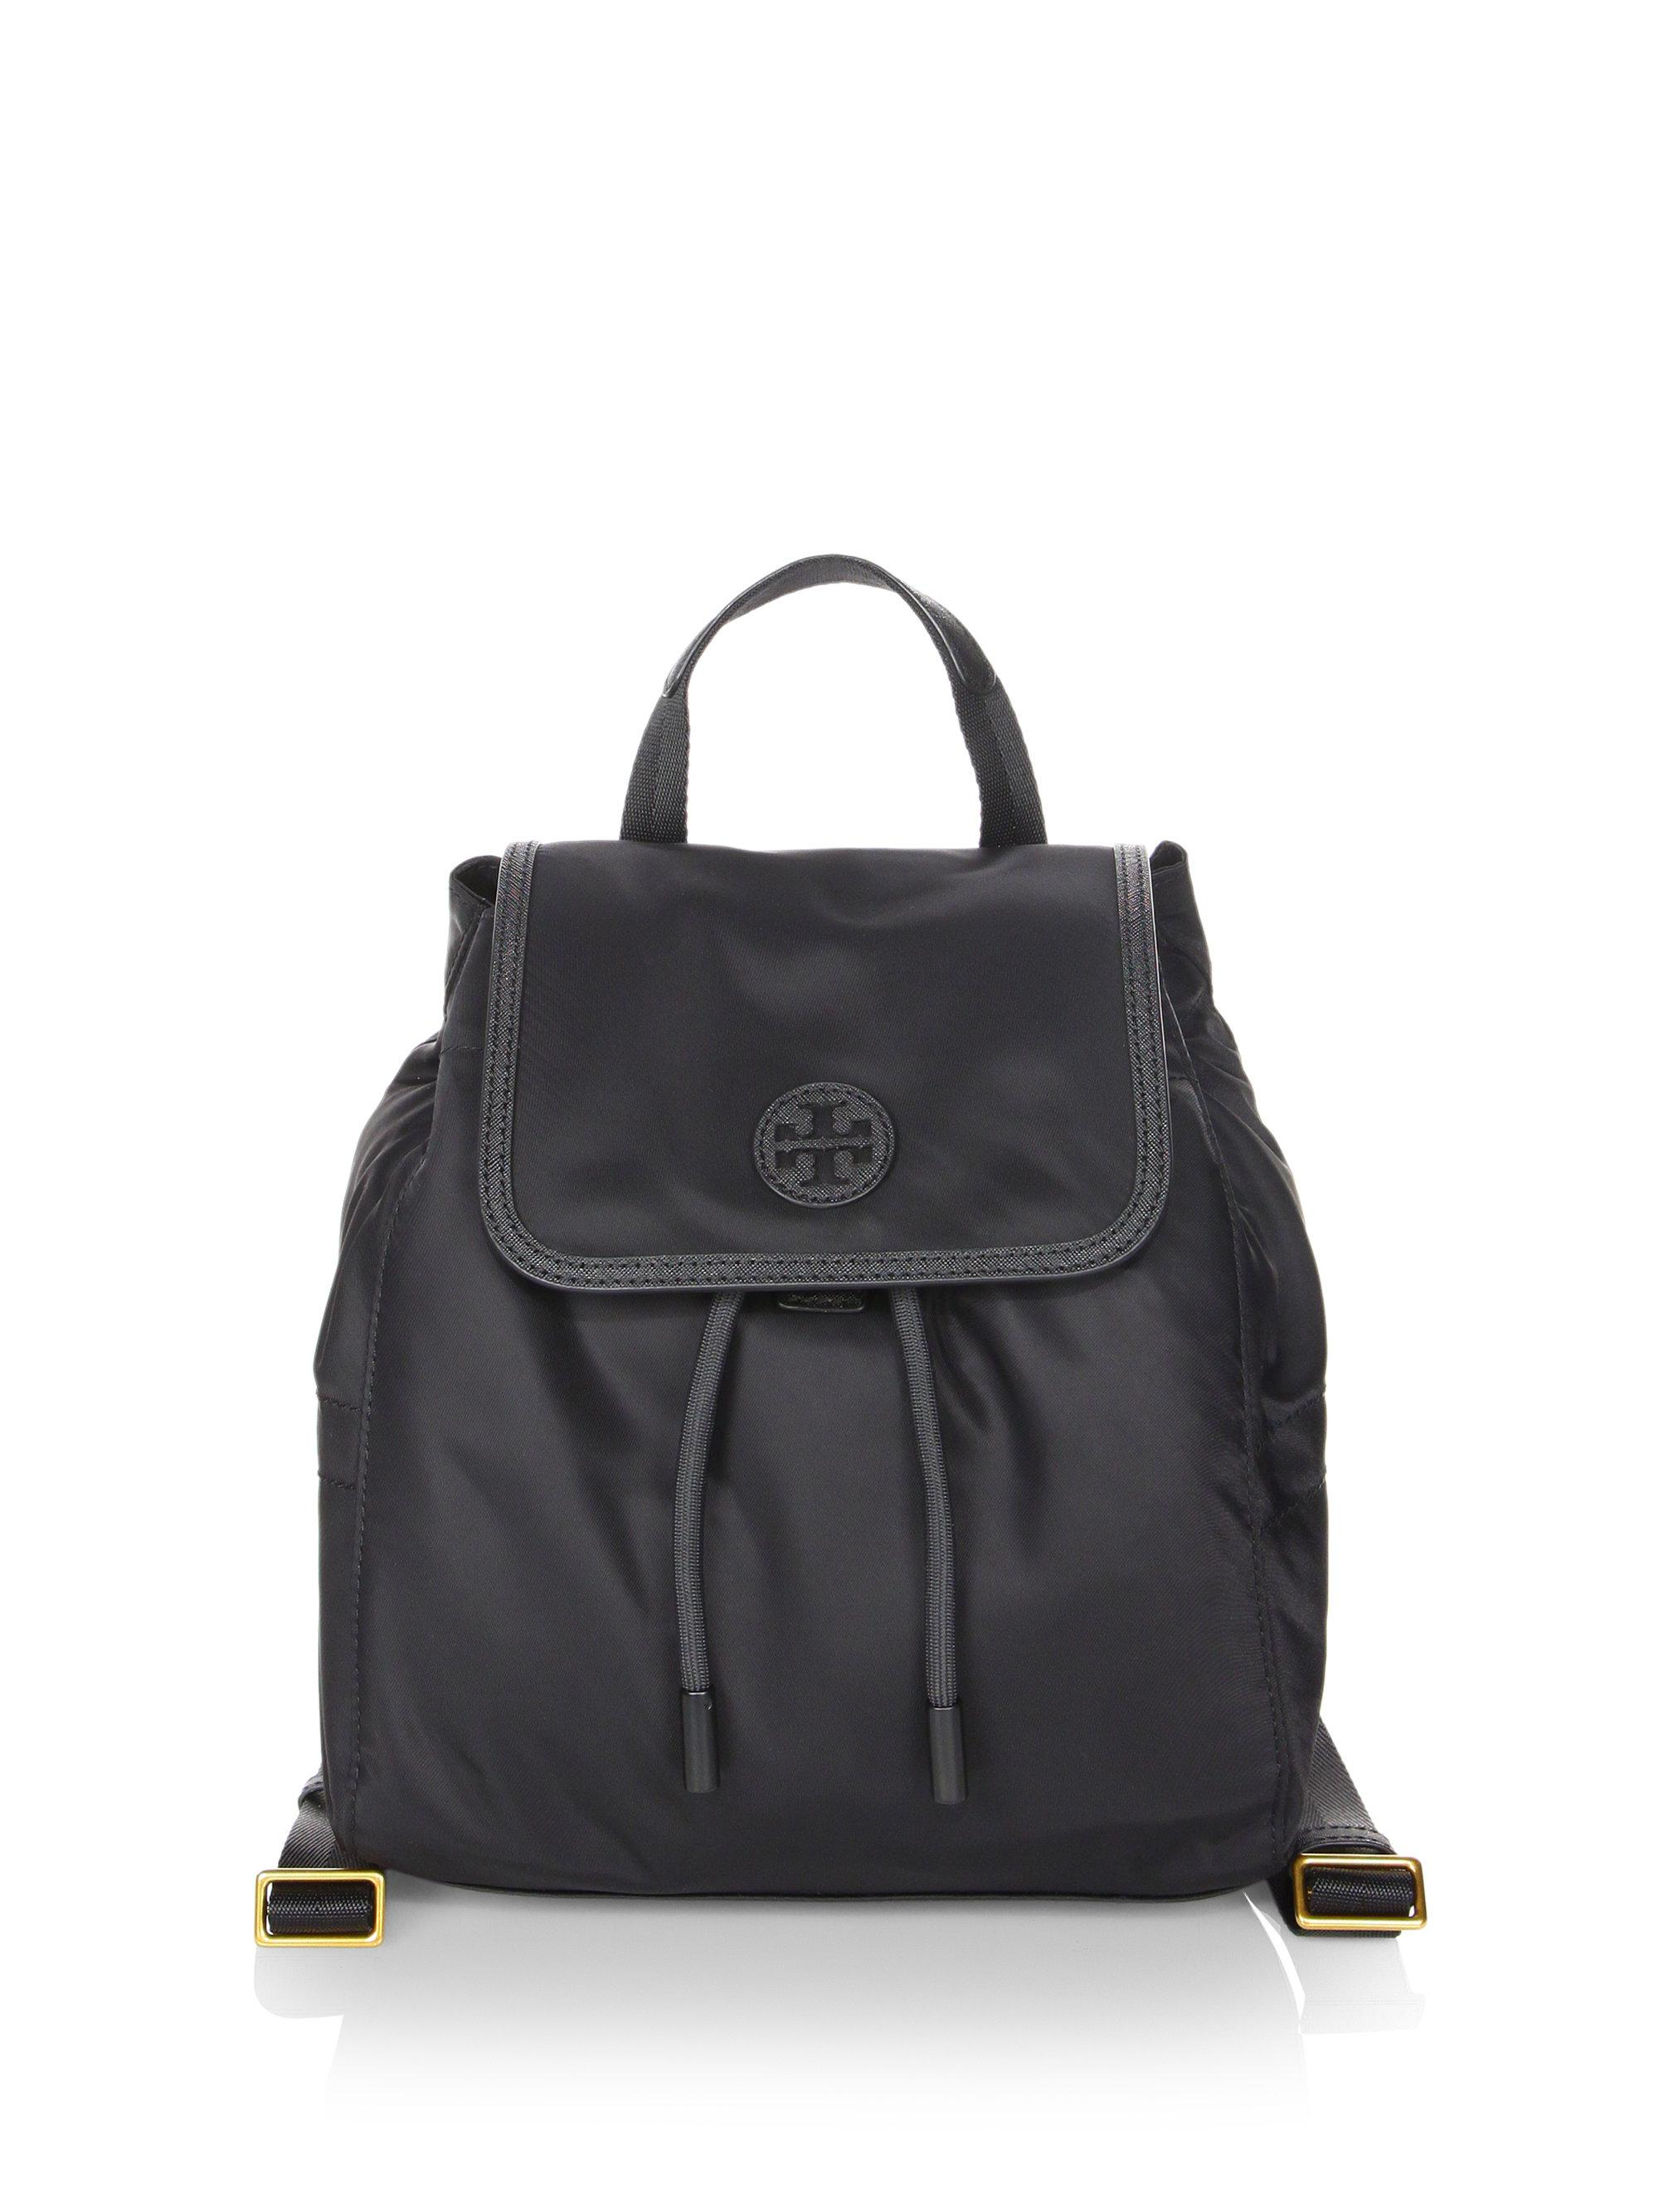 01bef7bf090 Lyst - Tory Burch Scout Nylon Small Backpack in Black